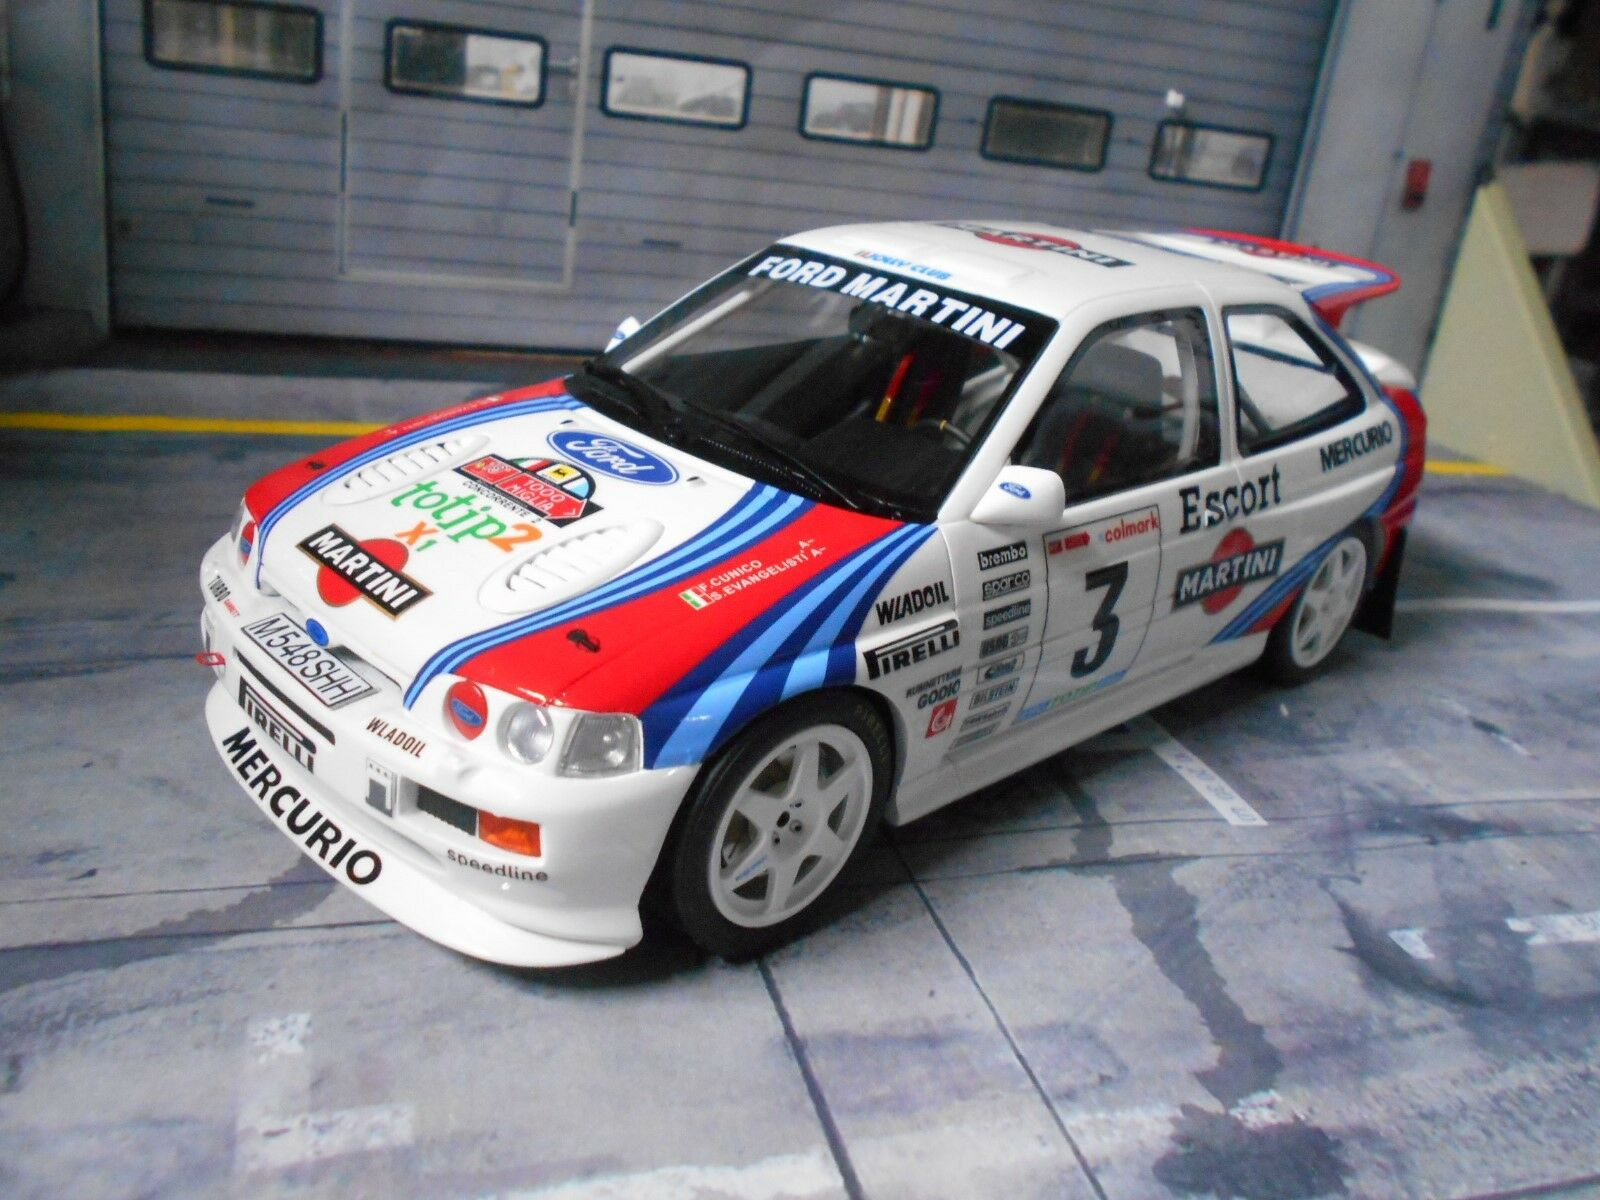 Ford Escort RS Cosworth Rallye  3 Cunico Martini 1995 1000 MIG Racing Otto 1 18